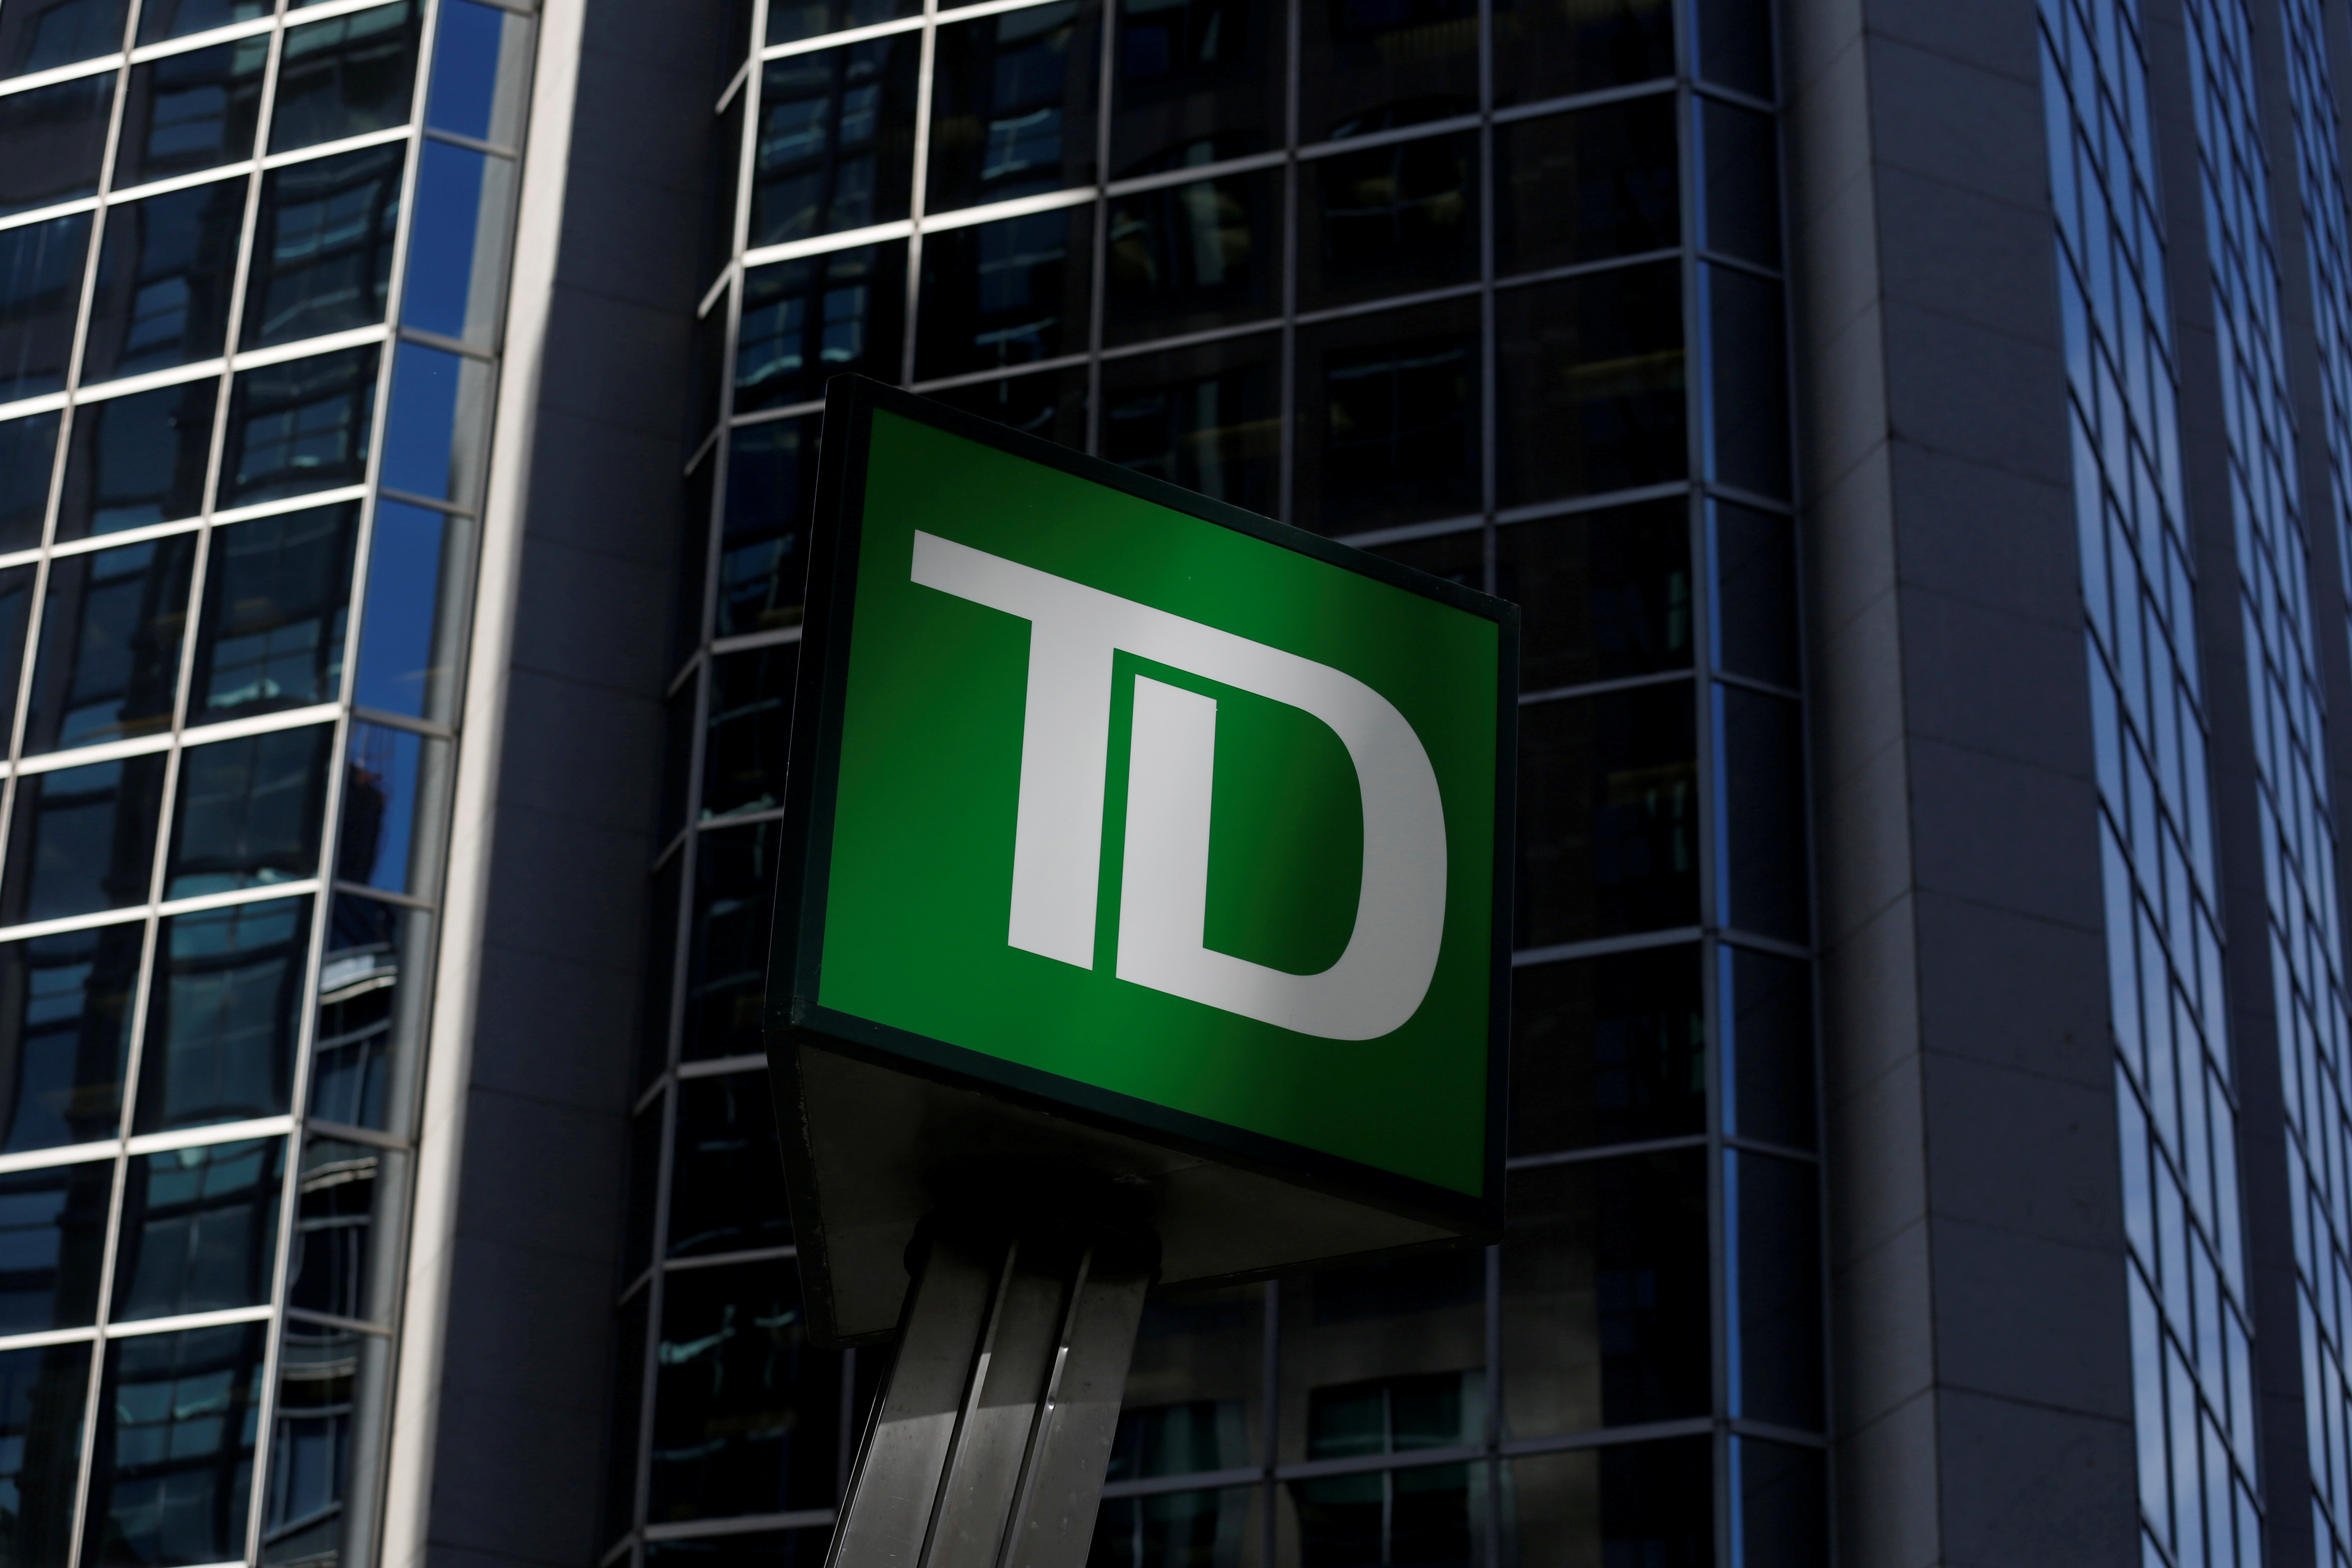 A Toronto-Dominion Bank (TD) sign is seen outside of a branch in Ottawa, Ontario, Canada, May 26, 2016. REUTERS/Chris Wattie/File Photo